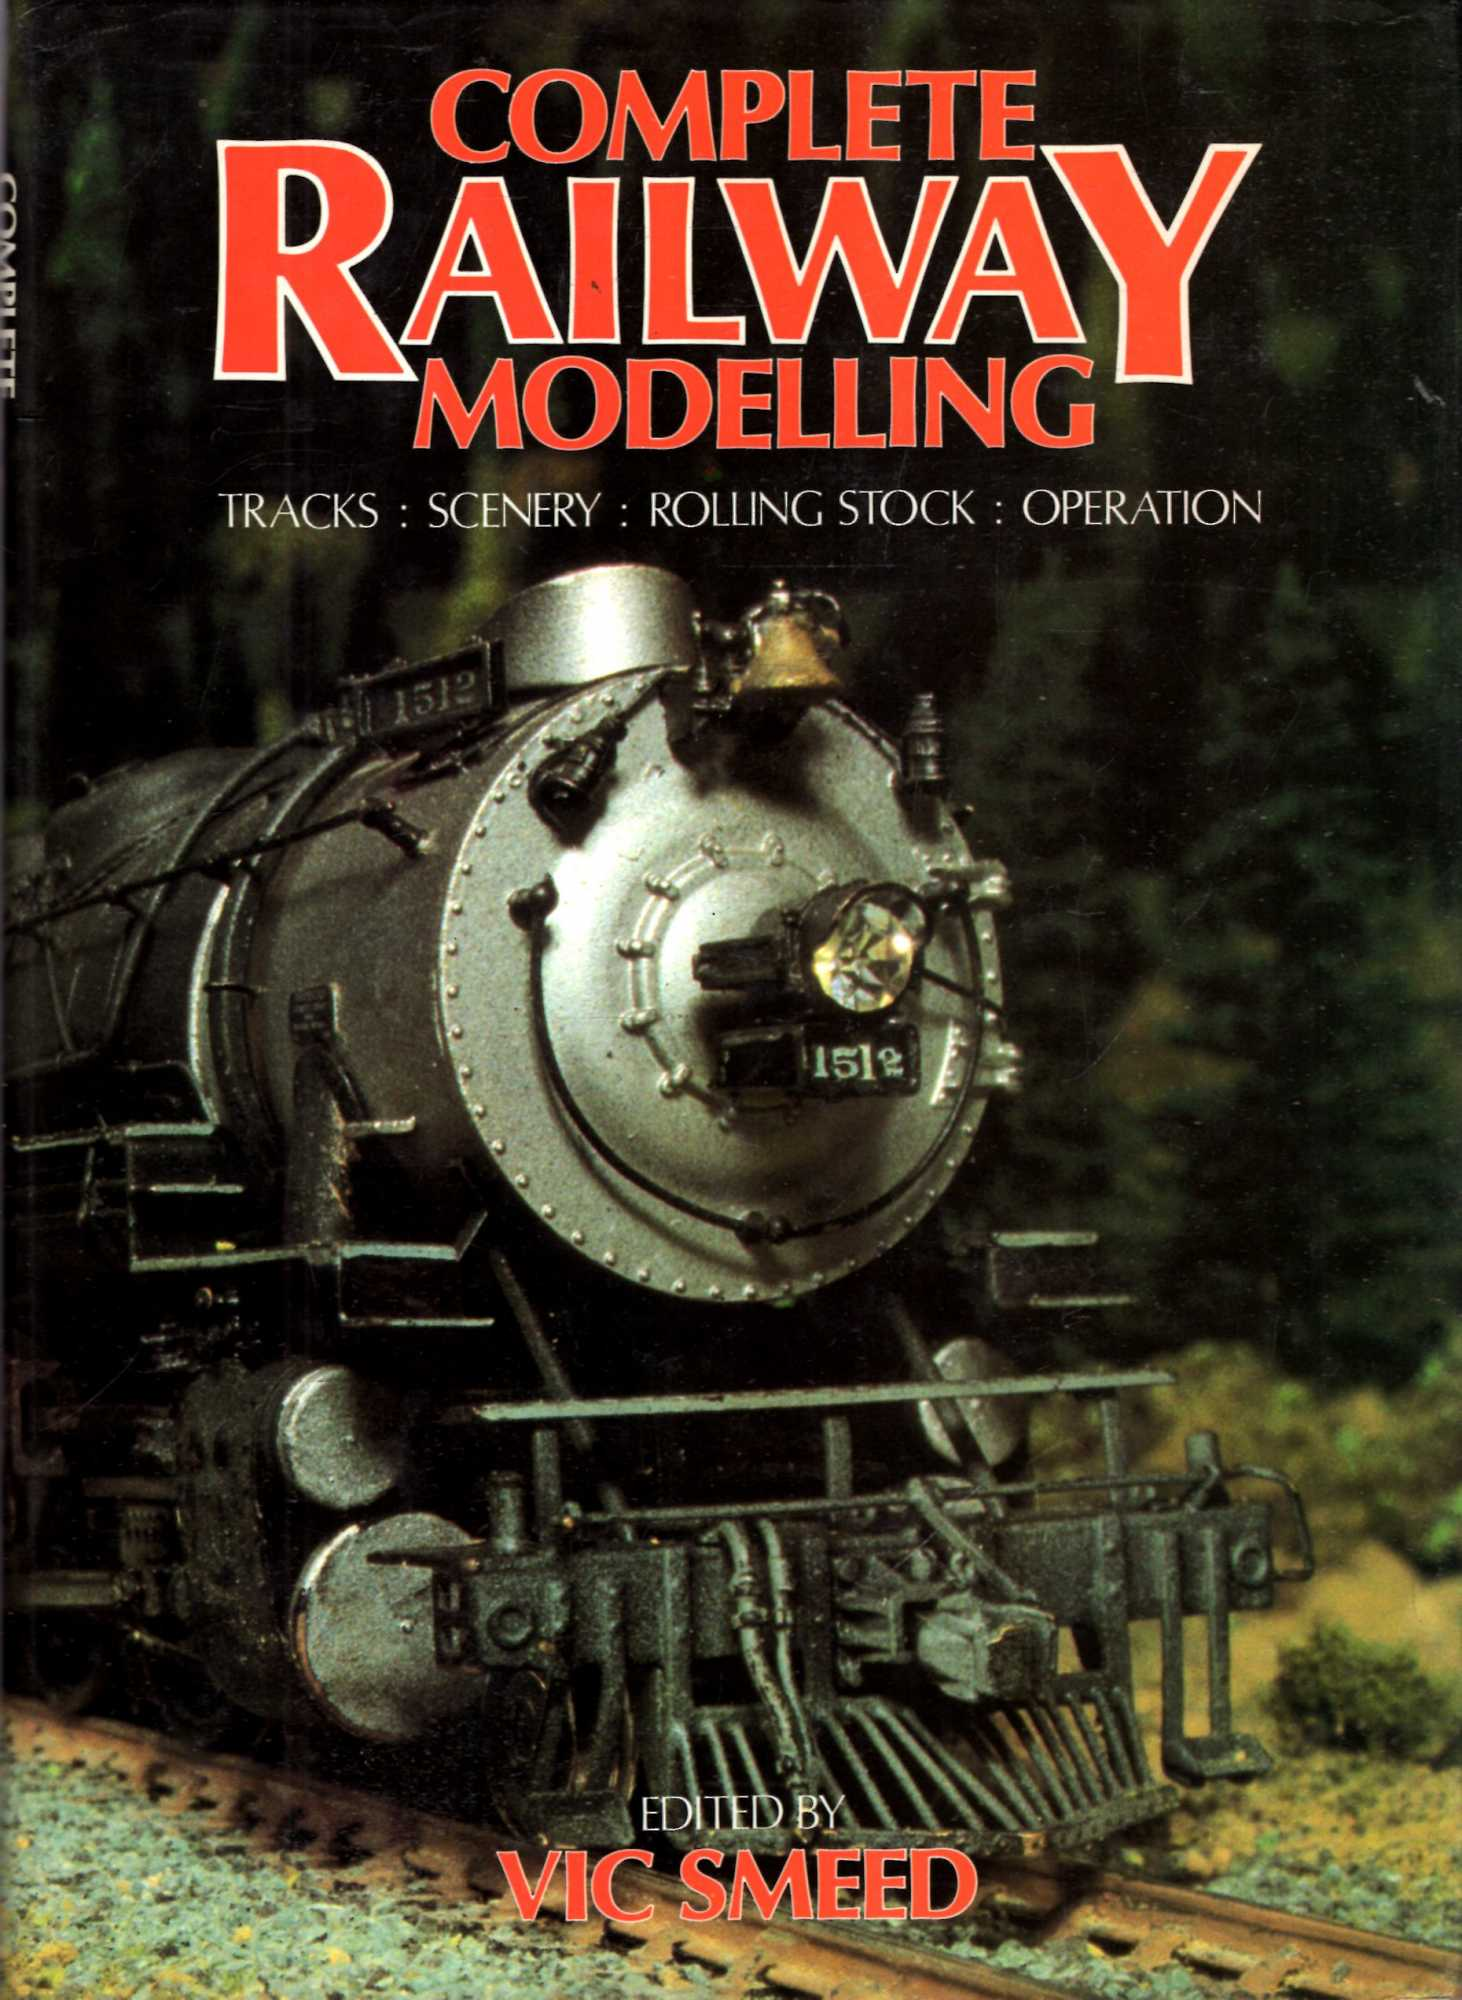 Image for The Complete Railway Modeller [corrected to Complete Railway Modelling]